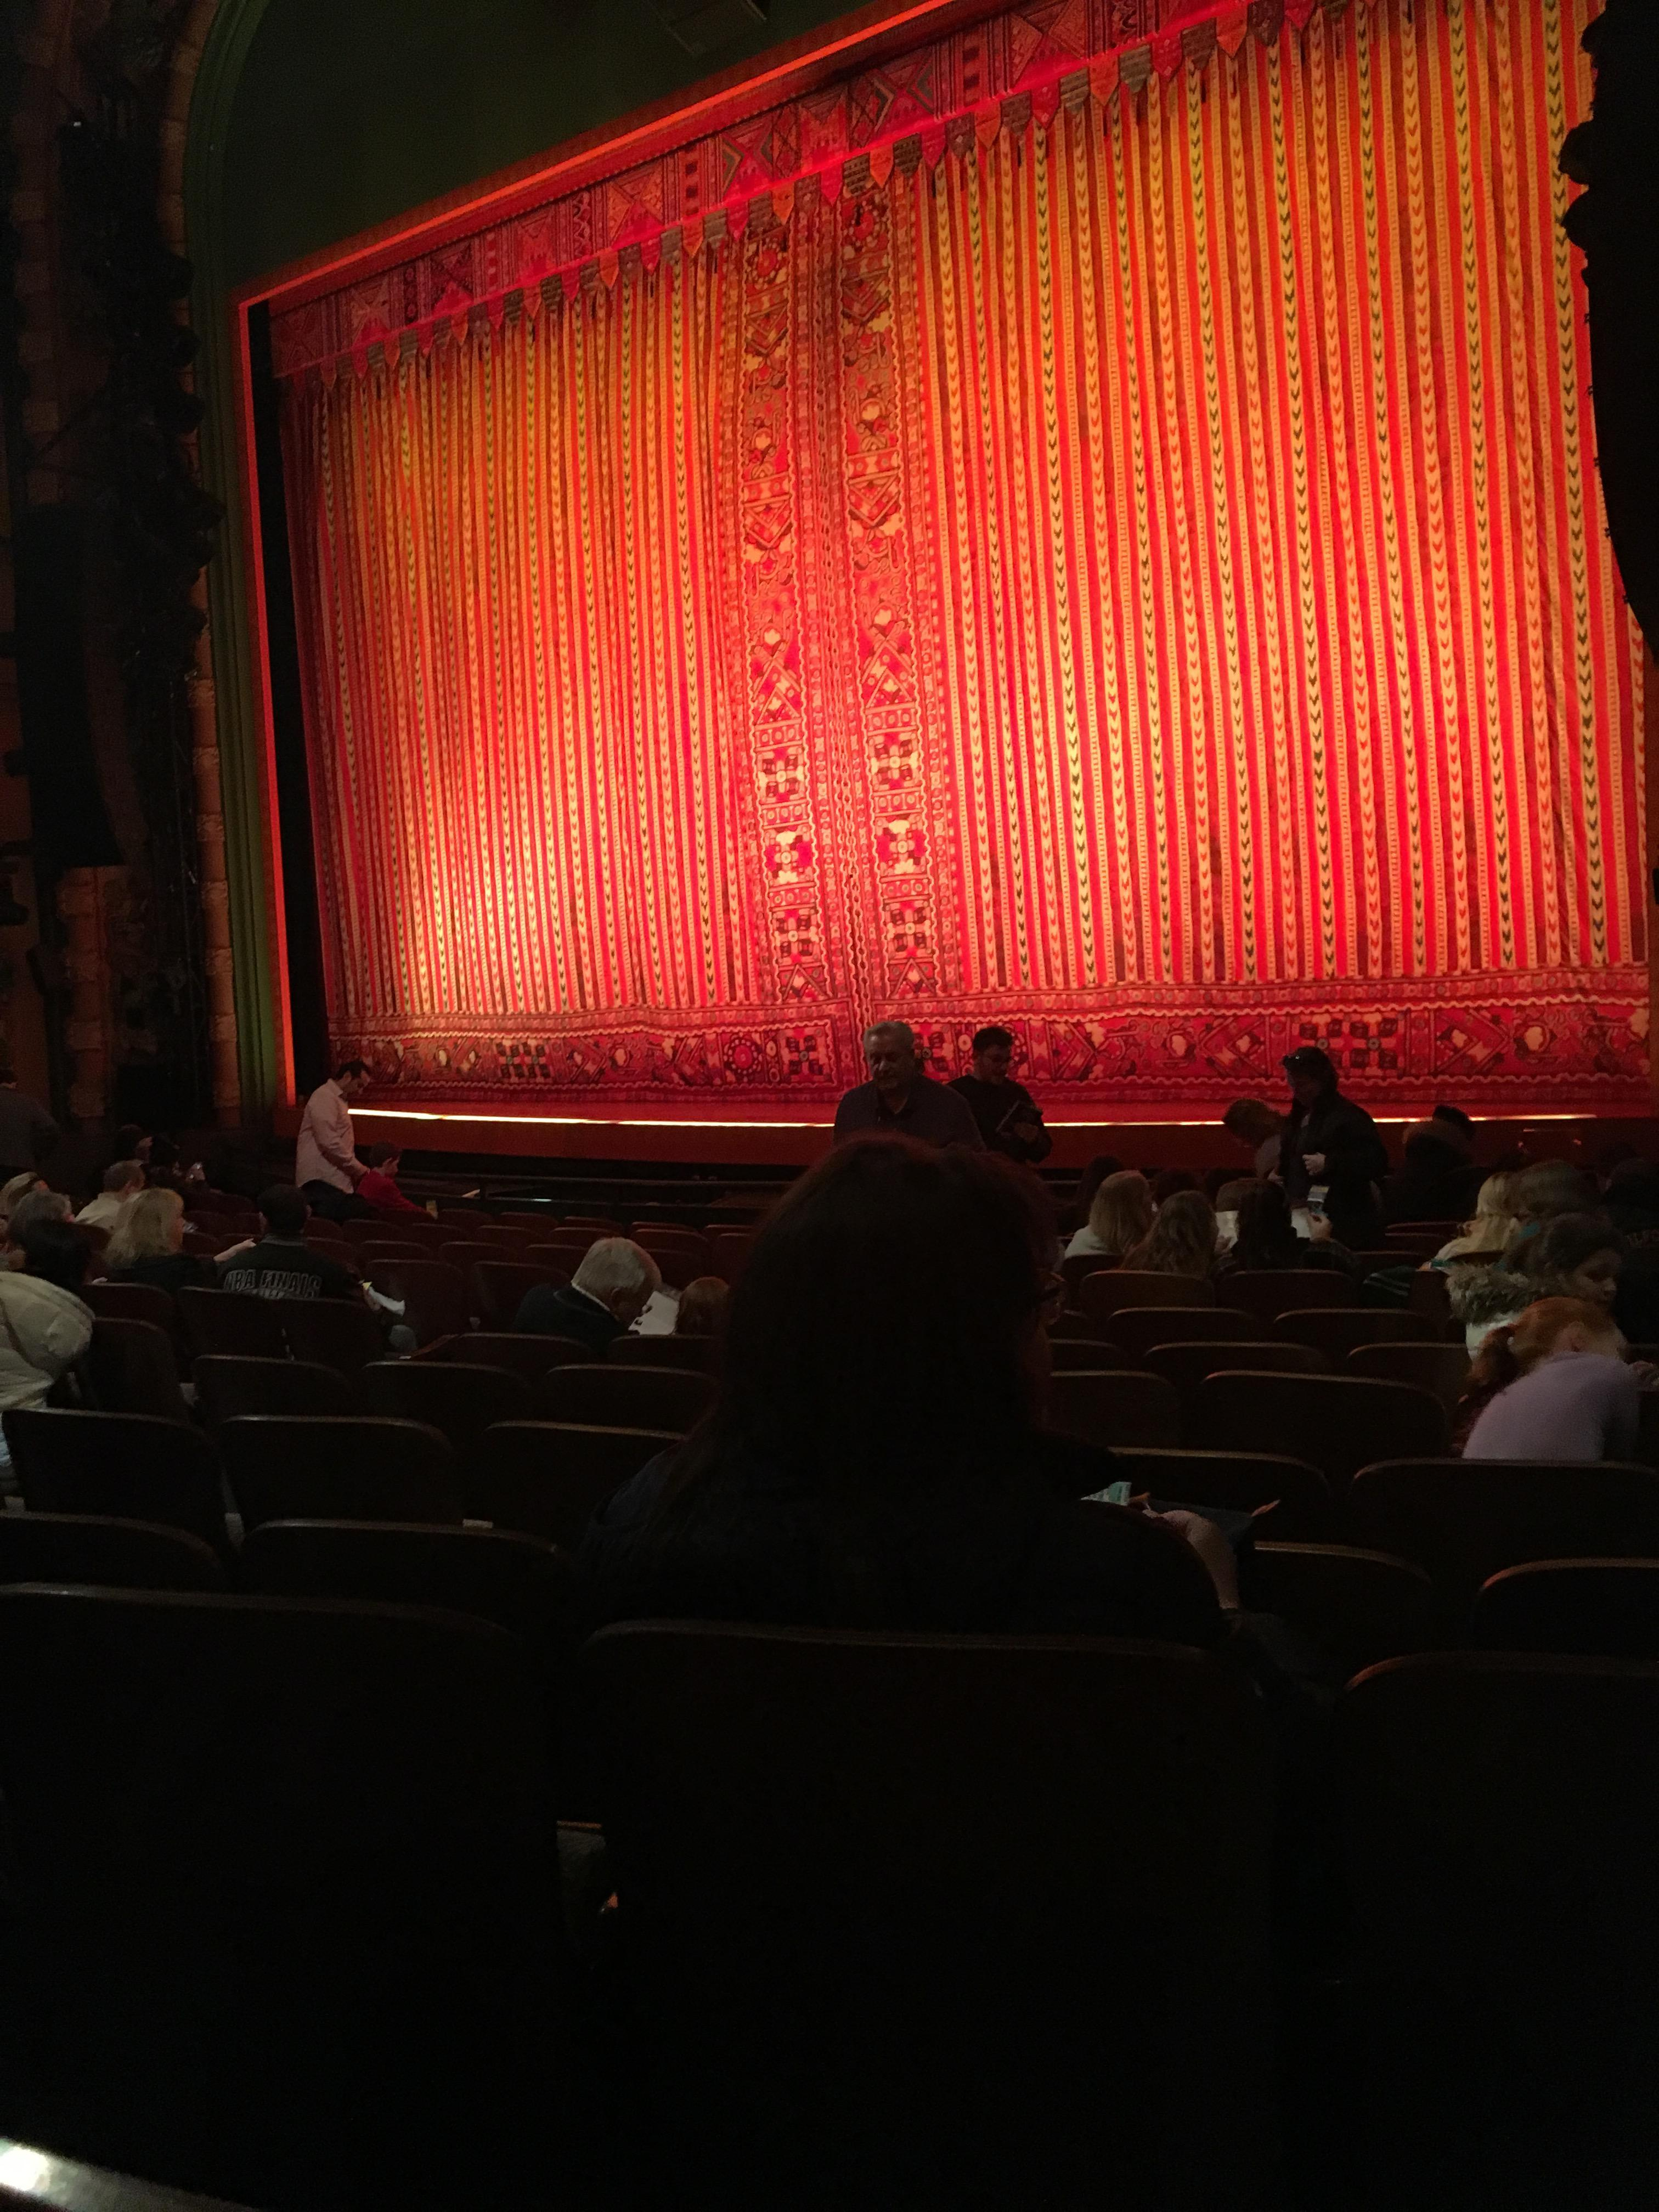 New Amsterdam Theatre Section Orchestra R Row M  Seat 18